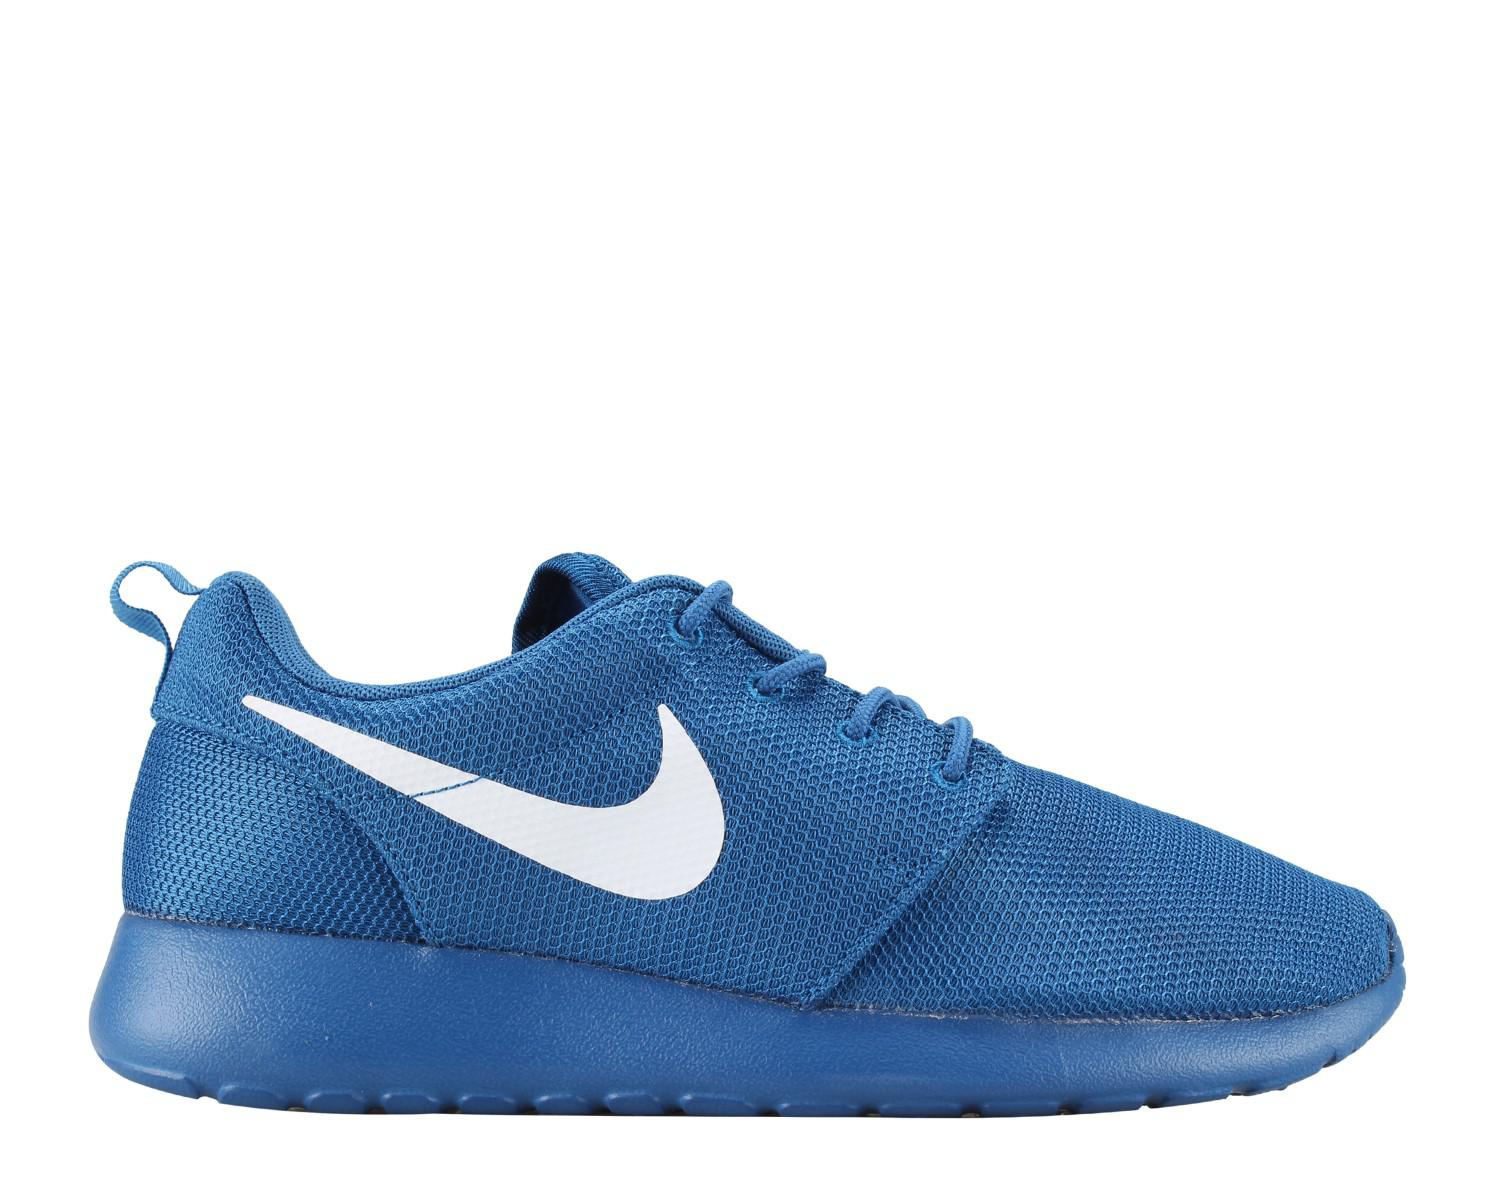 0c934f65e7789 ... release date lyst nike roshe one running shoes size 10.5 in blue for  men 32757 15bb1